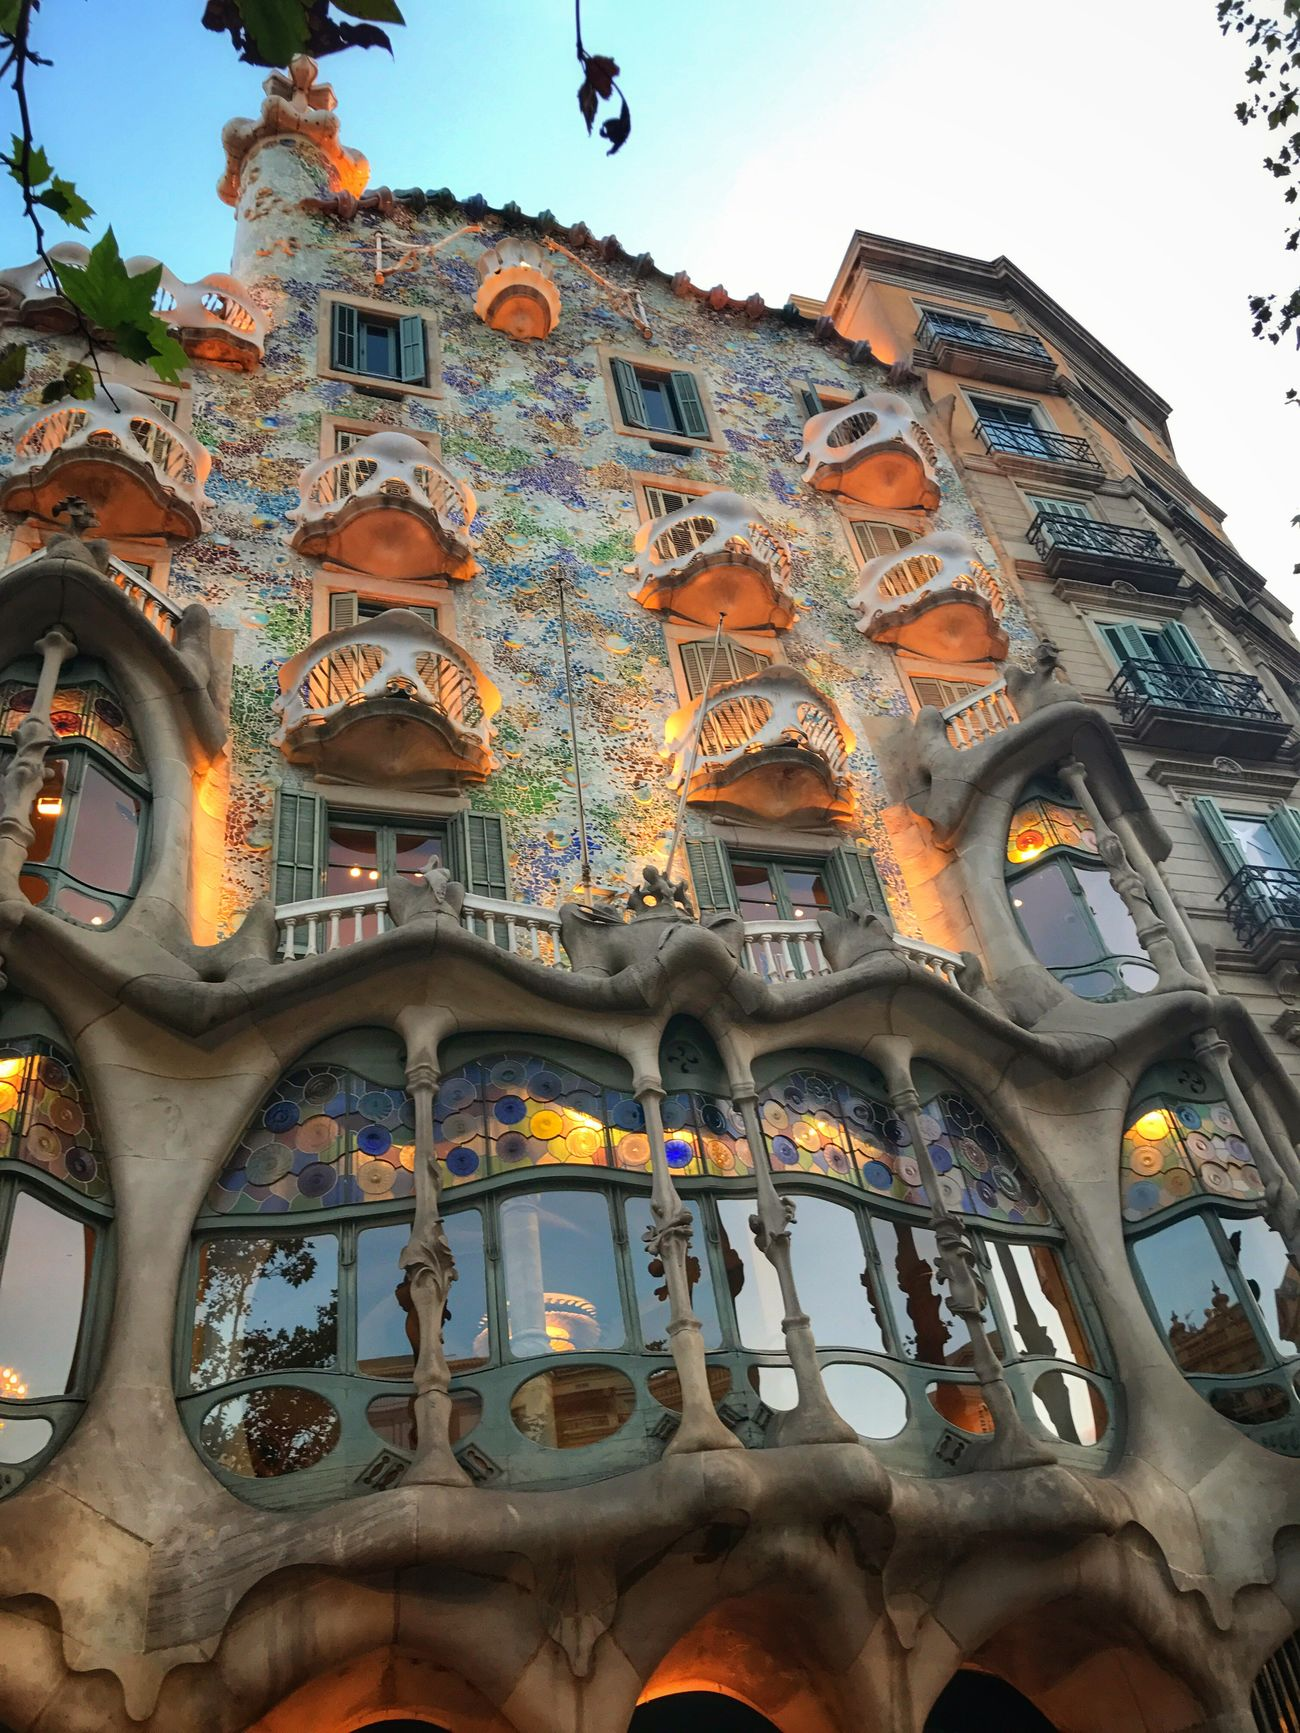 Casa Batlo designed by Antoni Gaudi Barcelona Low Angle View Architecture Built Structure Building Exterior Day Outdoors City No People Sky SPAIN Catalunya Catalonia Barcelona EyeEm Selects City